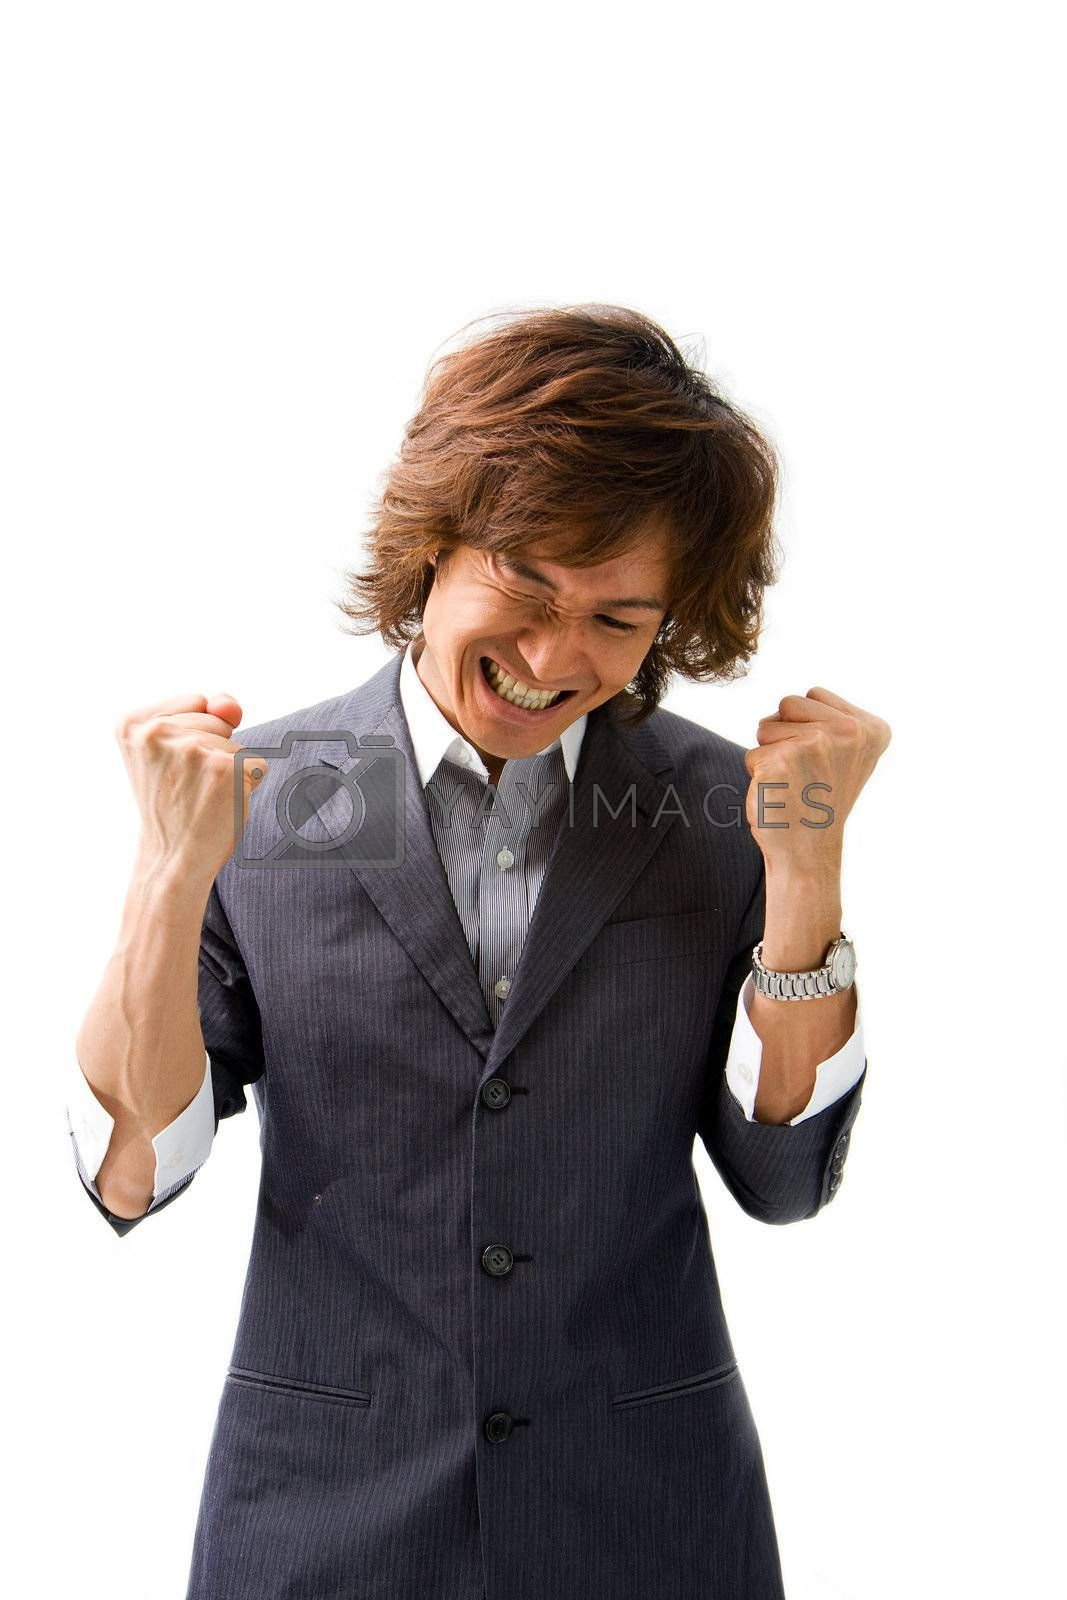 Young Asian business man celebrating a good deal, isolated